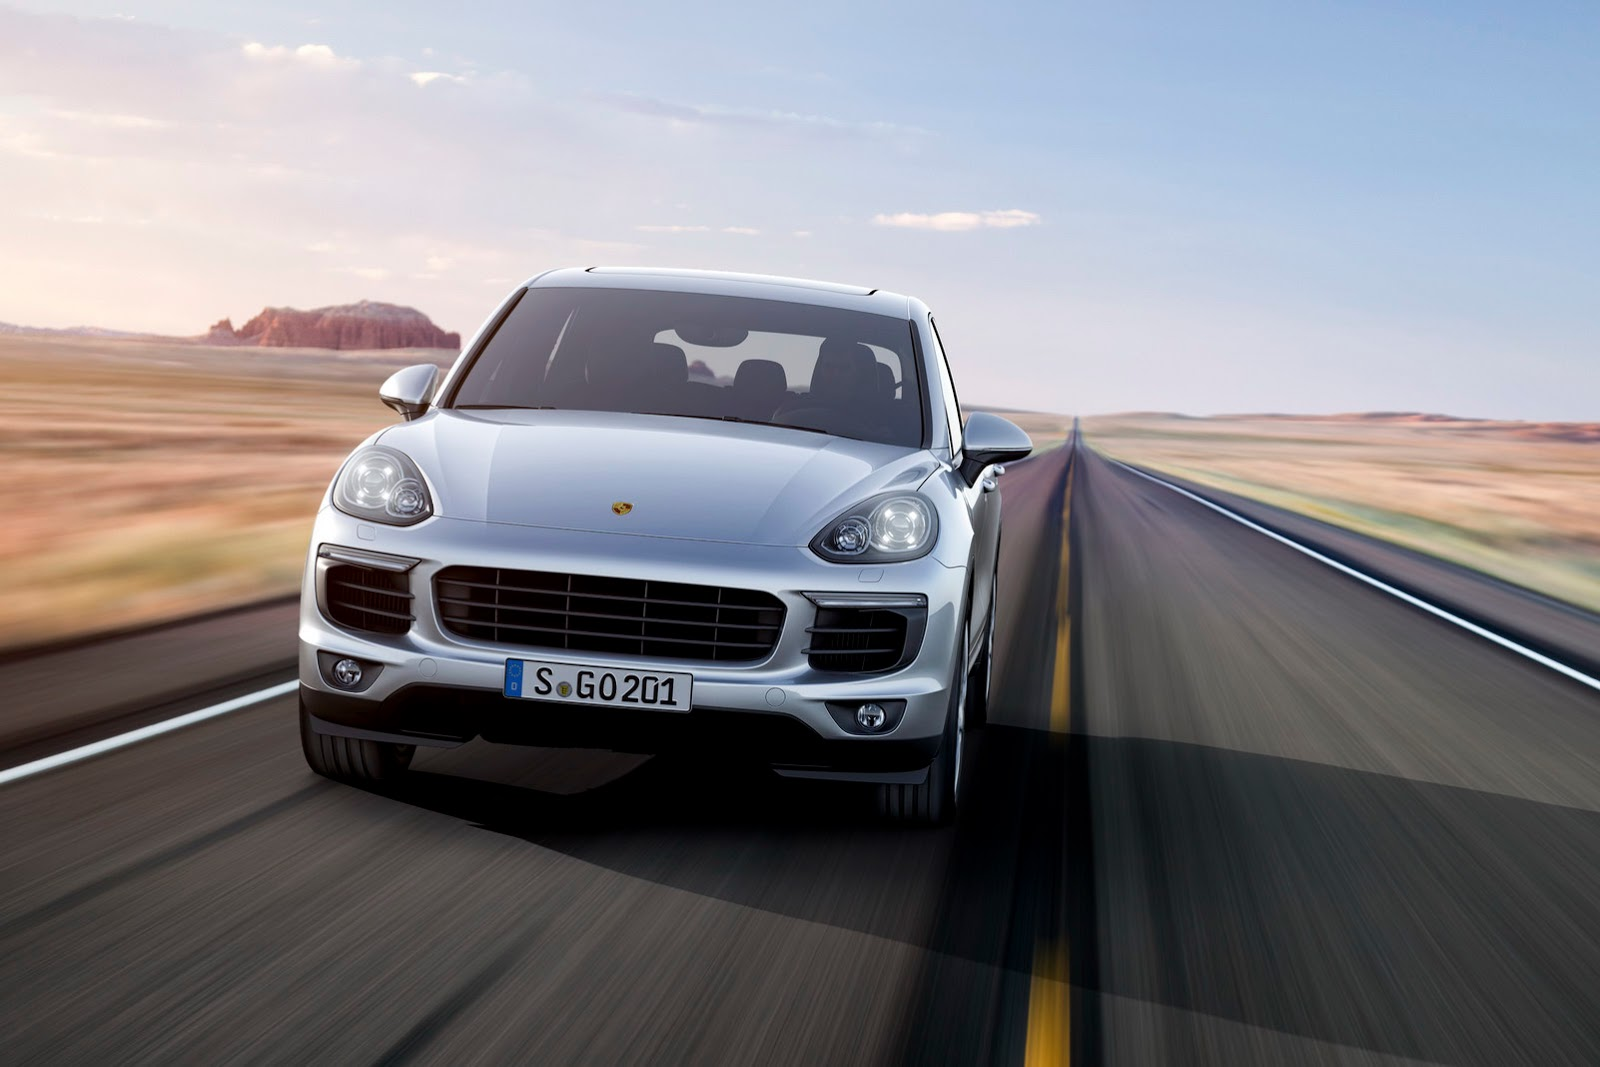 2015 Porsche Cayenne Launched In India Price Starts From Rs 1 02 Crores